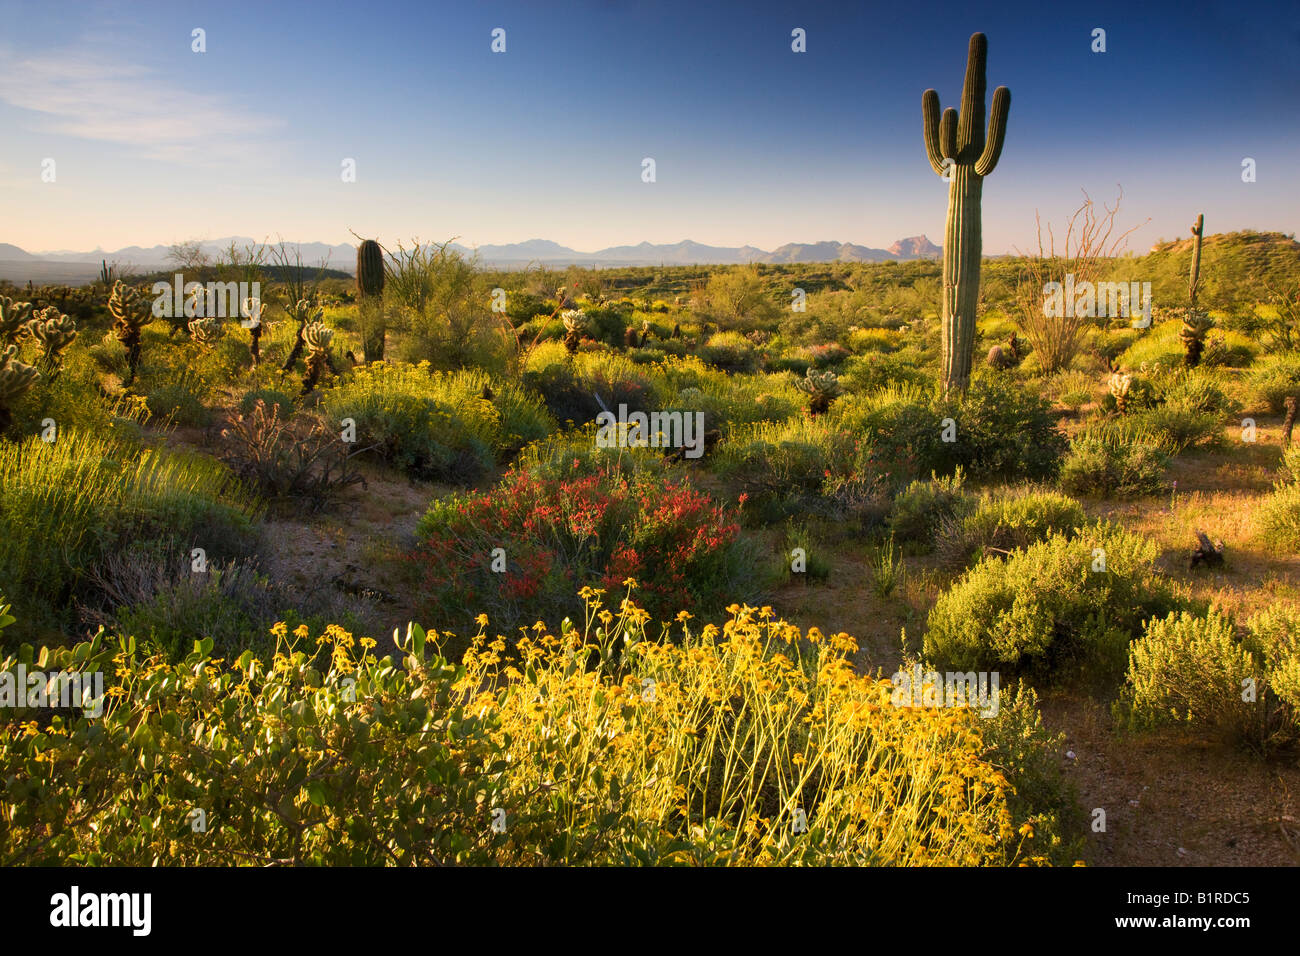 Wildflowers and cactus at McDowell Mountain Regional Park near Fountain Hills outside of Phoenix Arizona - Stock Image